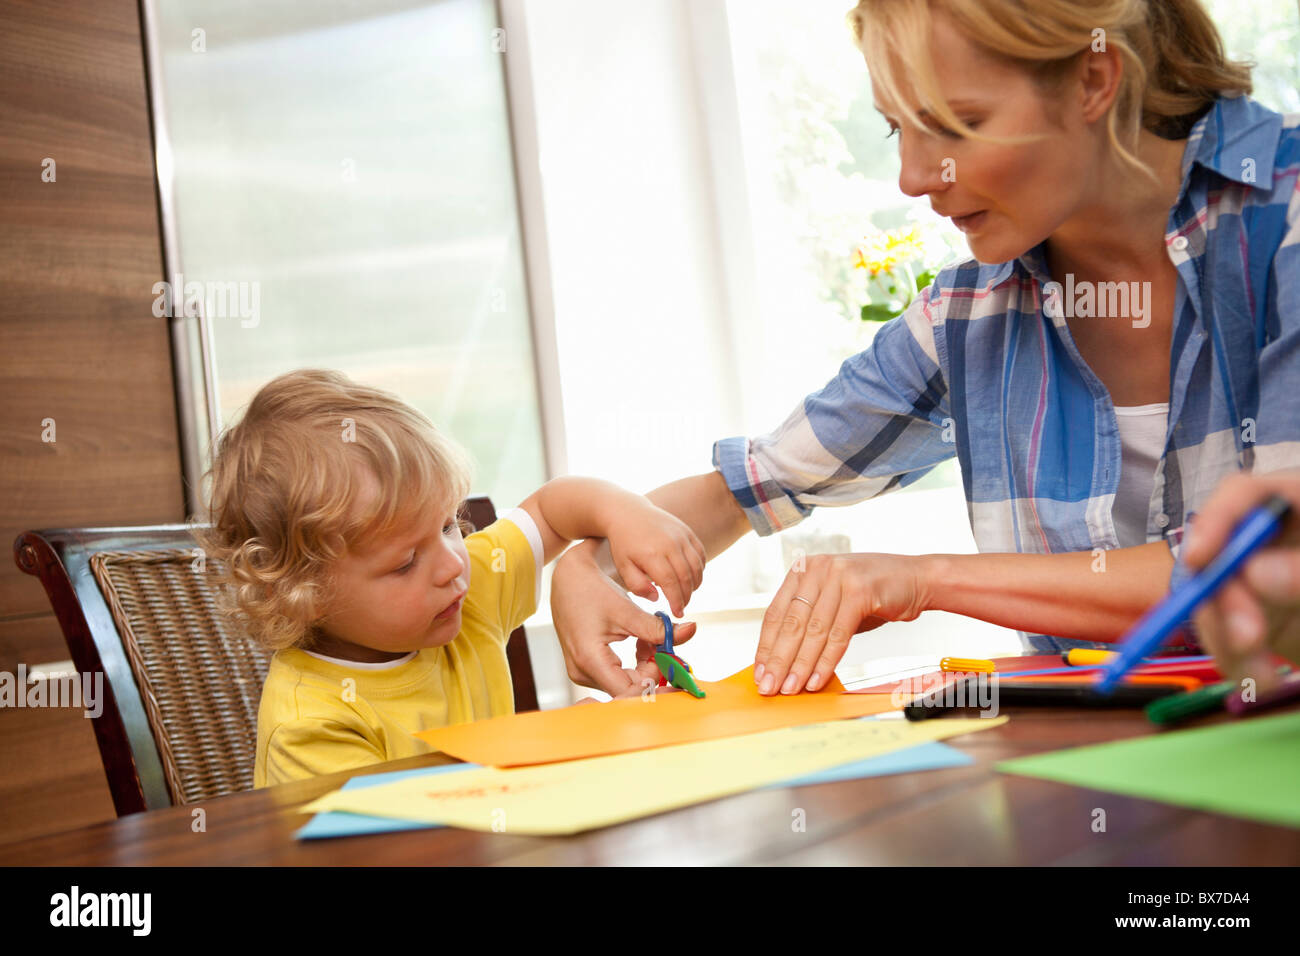 Woman doing handicraft with child - Stock Image